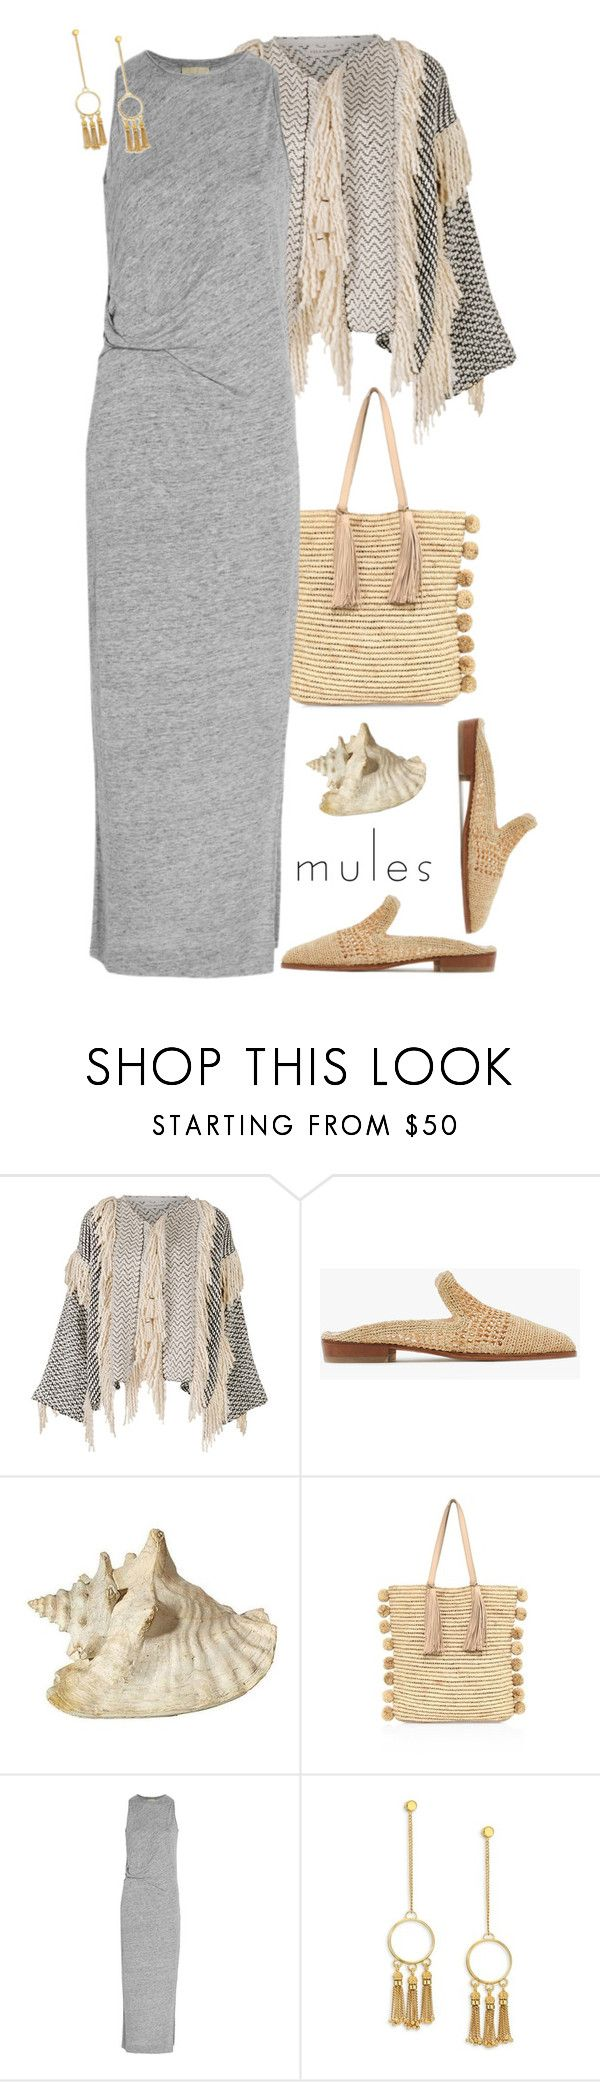 """Slip 'Em On: Mules'"" by dianefantasy ❤ liked on Polyvore featuring Ulla Johnson, Robert Clergerie, Loeffler Randall, By Malene Birger, Chloé, mules, polyvorecommunity and polyvoreeditorial"